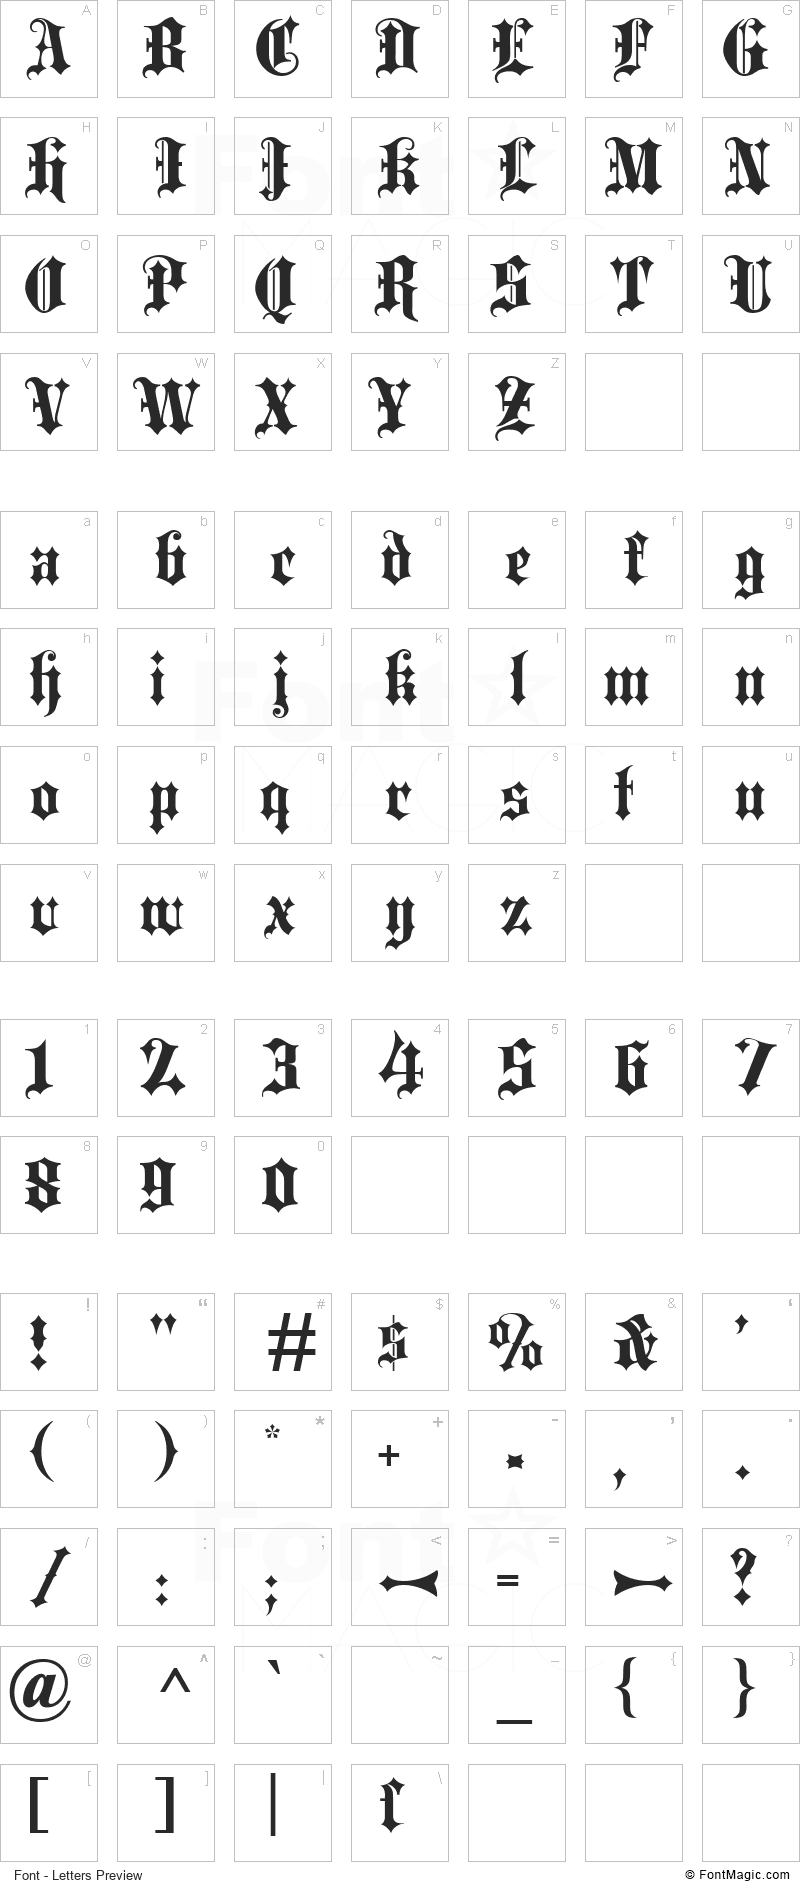 Blackletter Font - All Latters Preview Chart